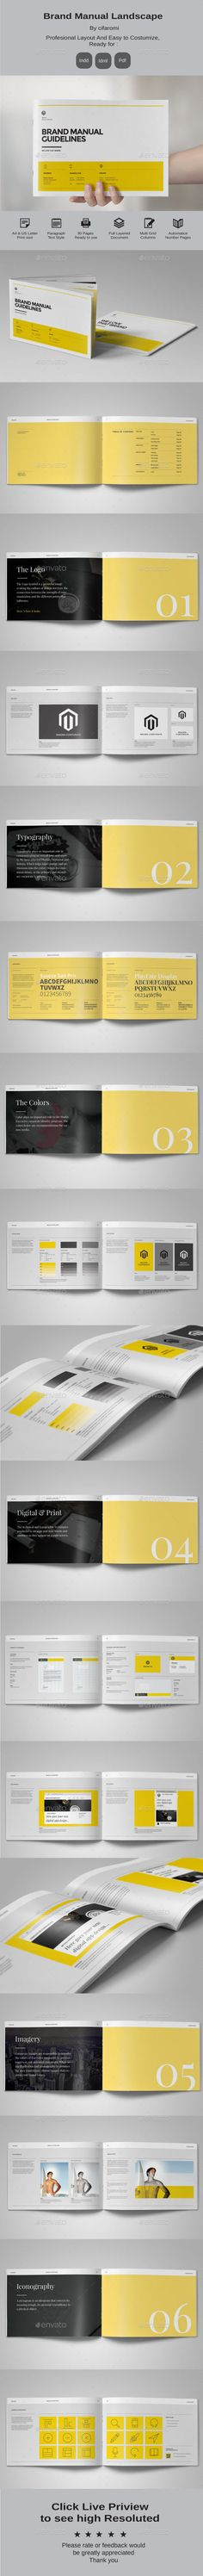 Minimal and Professional Brand Manual Landscape Brochure Template InDesign INDD #design Download: http://graphicriver.net/item/brand-manual-landscape/14366298?ref=ksioks